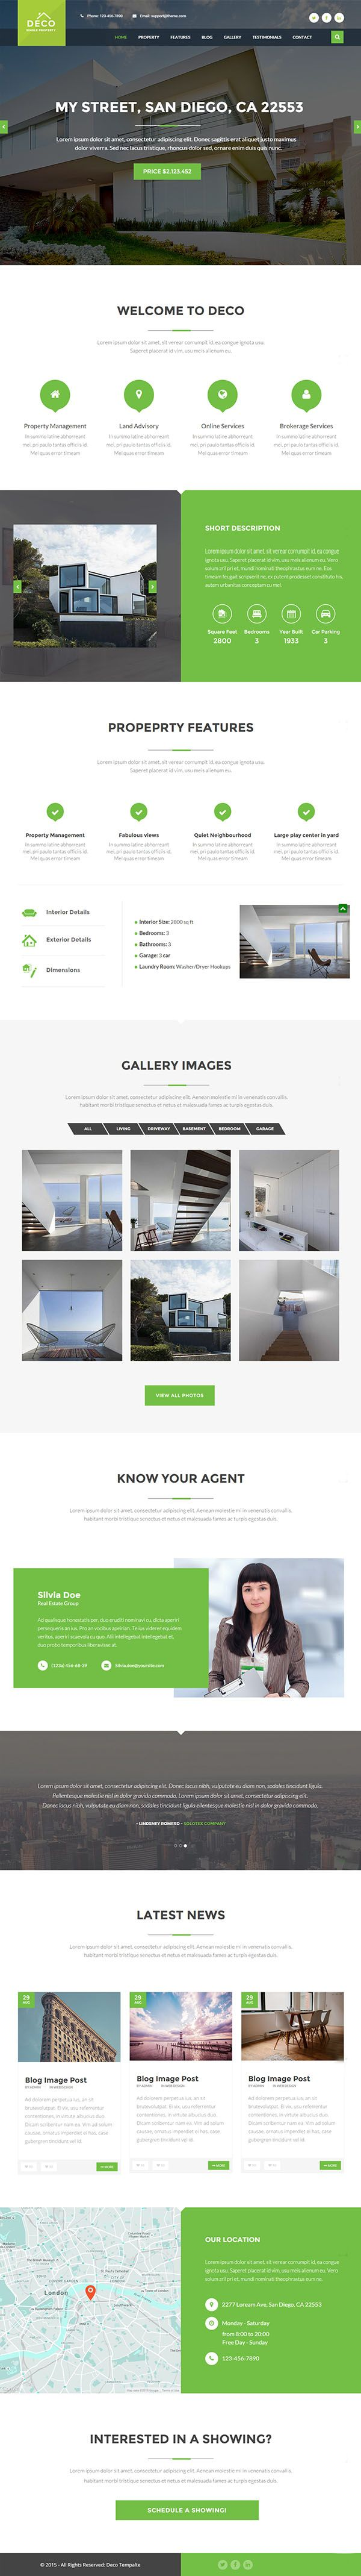 Deco House Single Property Real Estate Html Template Web Design Ideas Website Corporate Projects